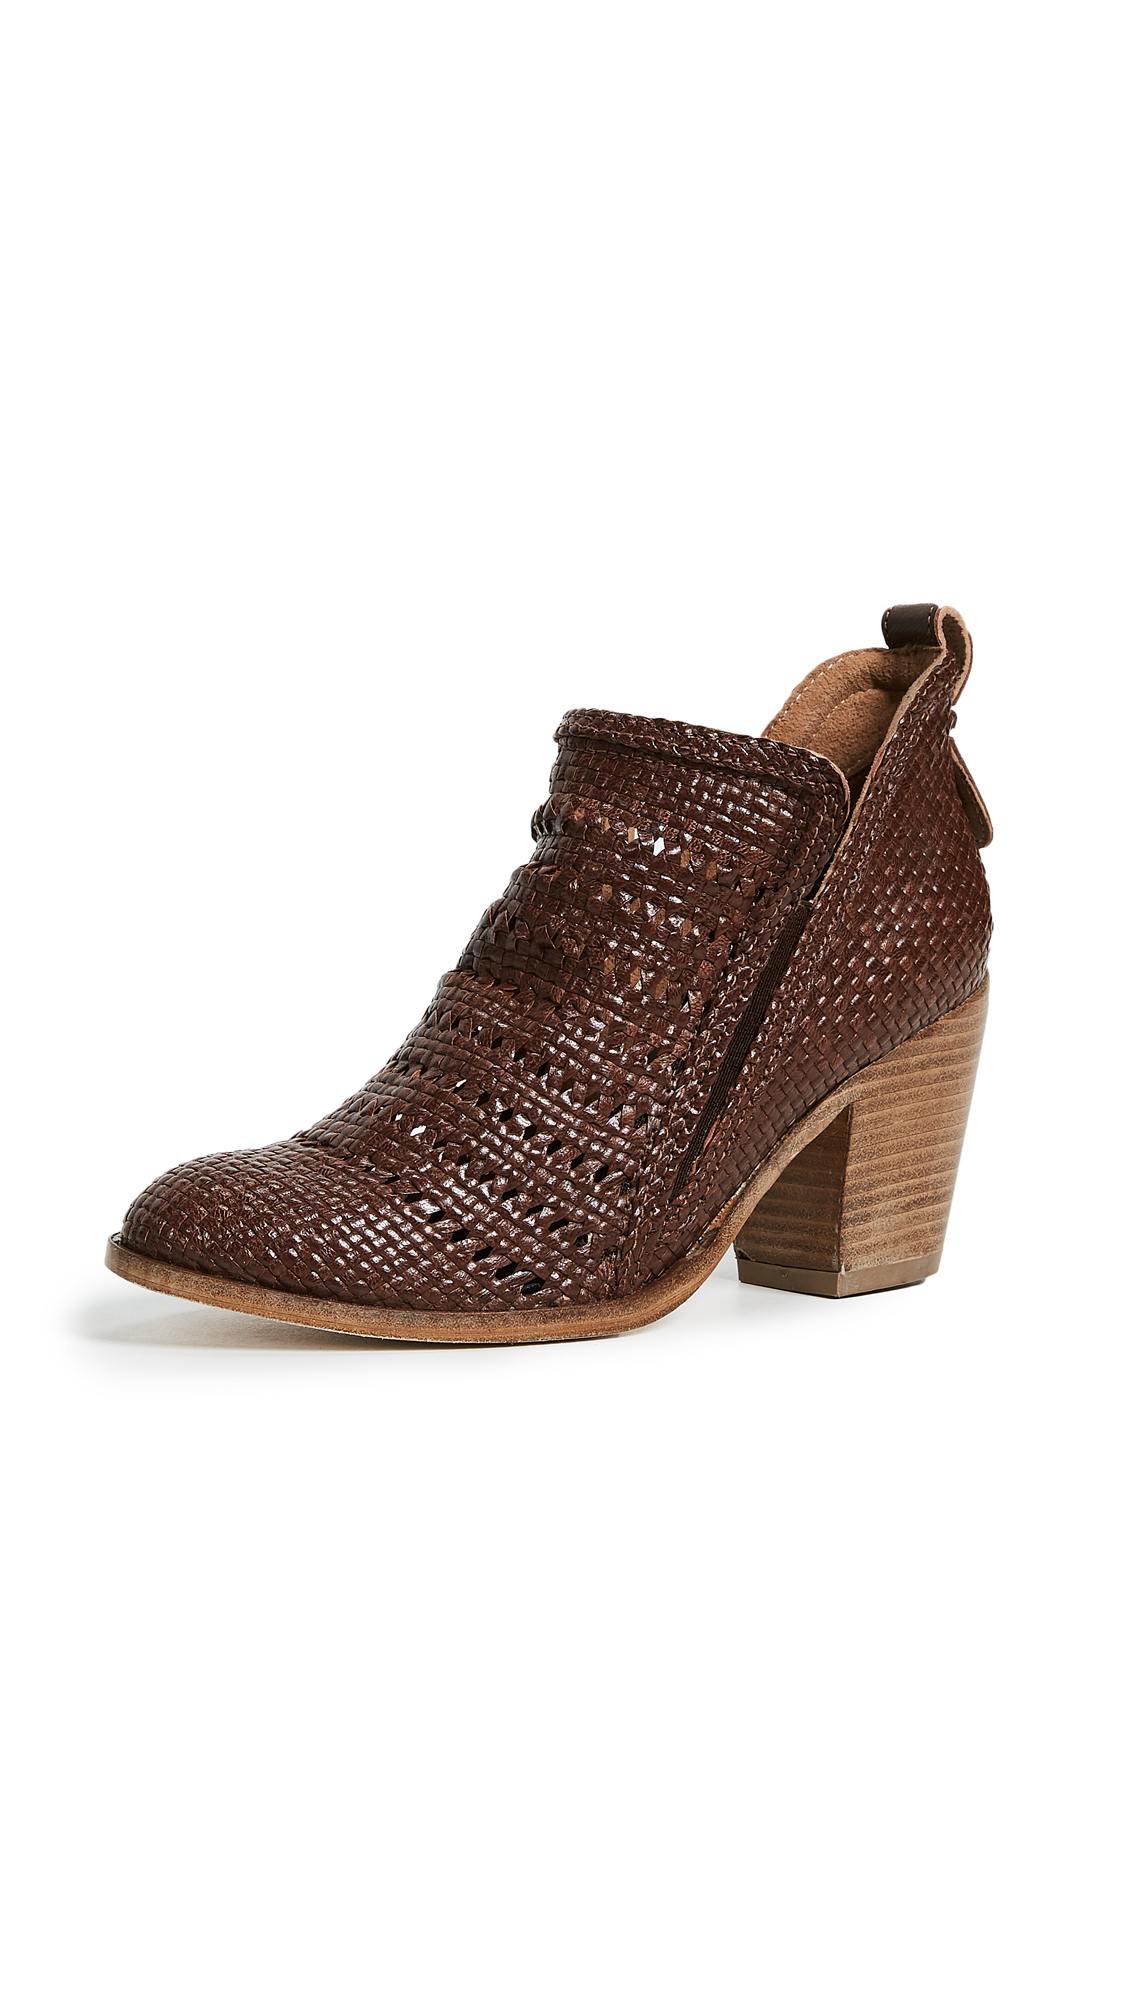 Jeffrey Campbell Burman Woven Ankle Boots - Brown